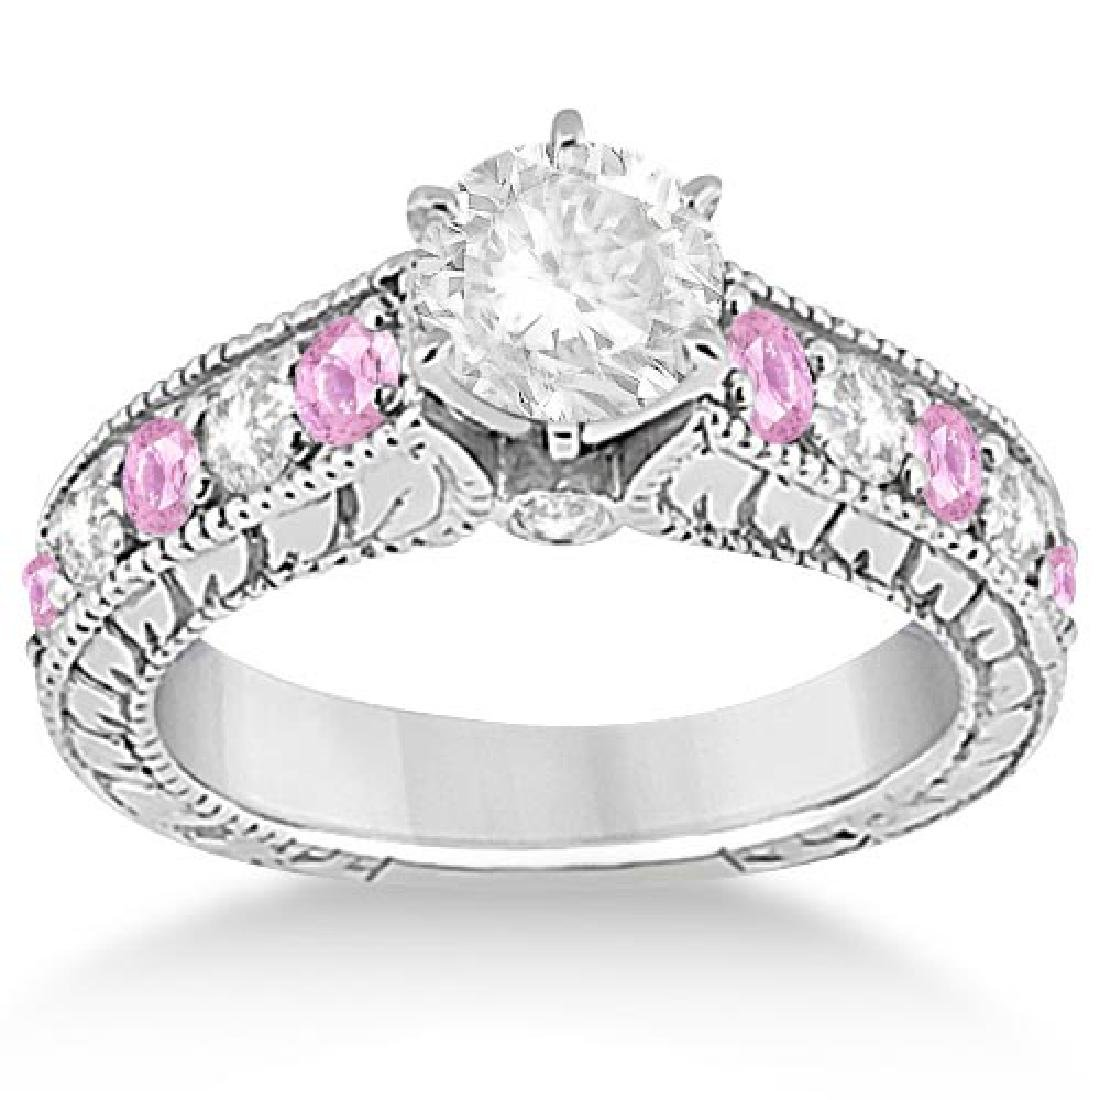 Vintage Diamond and Pink Sapphire Engagement Ring in 14